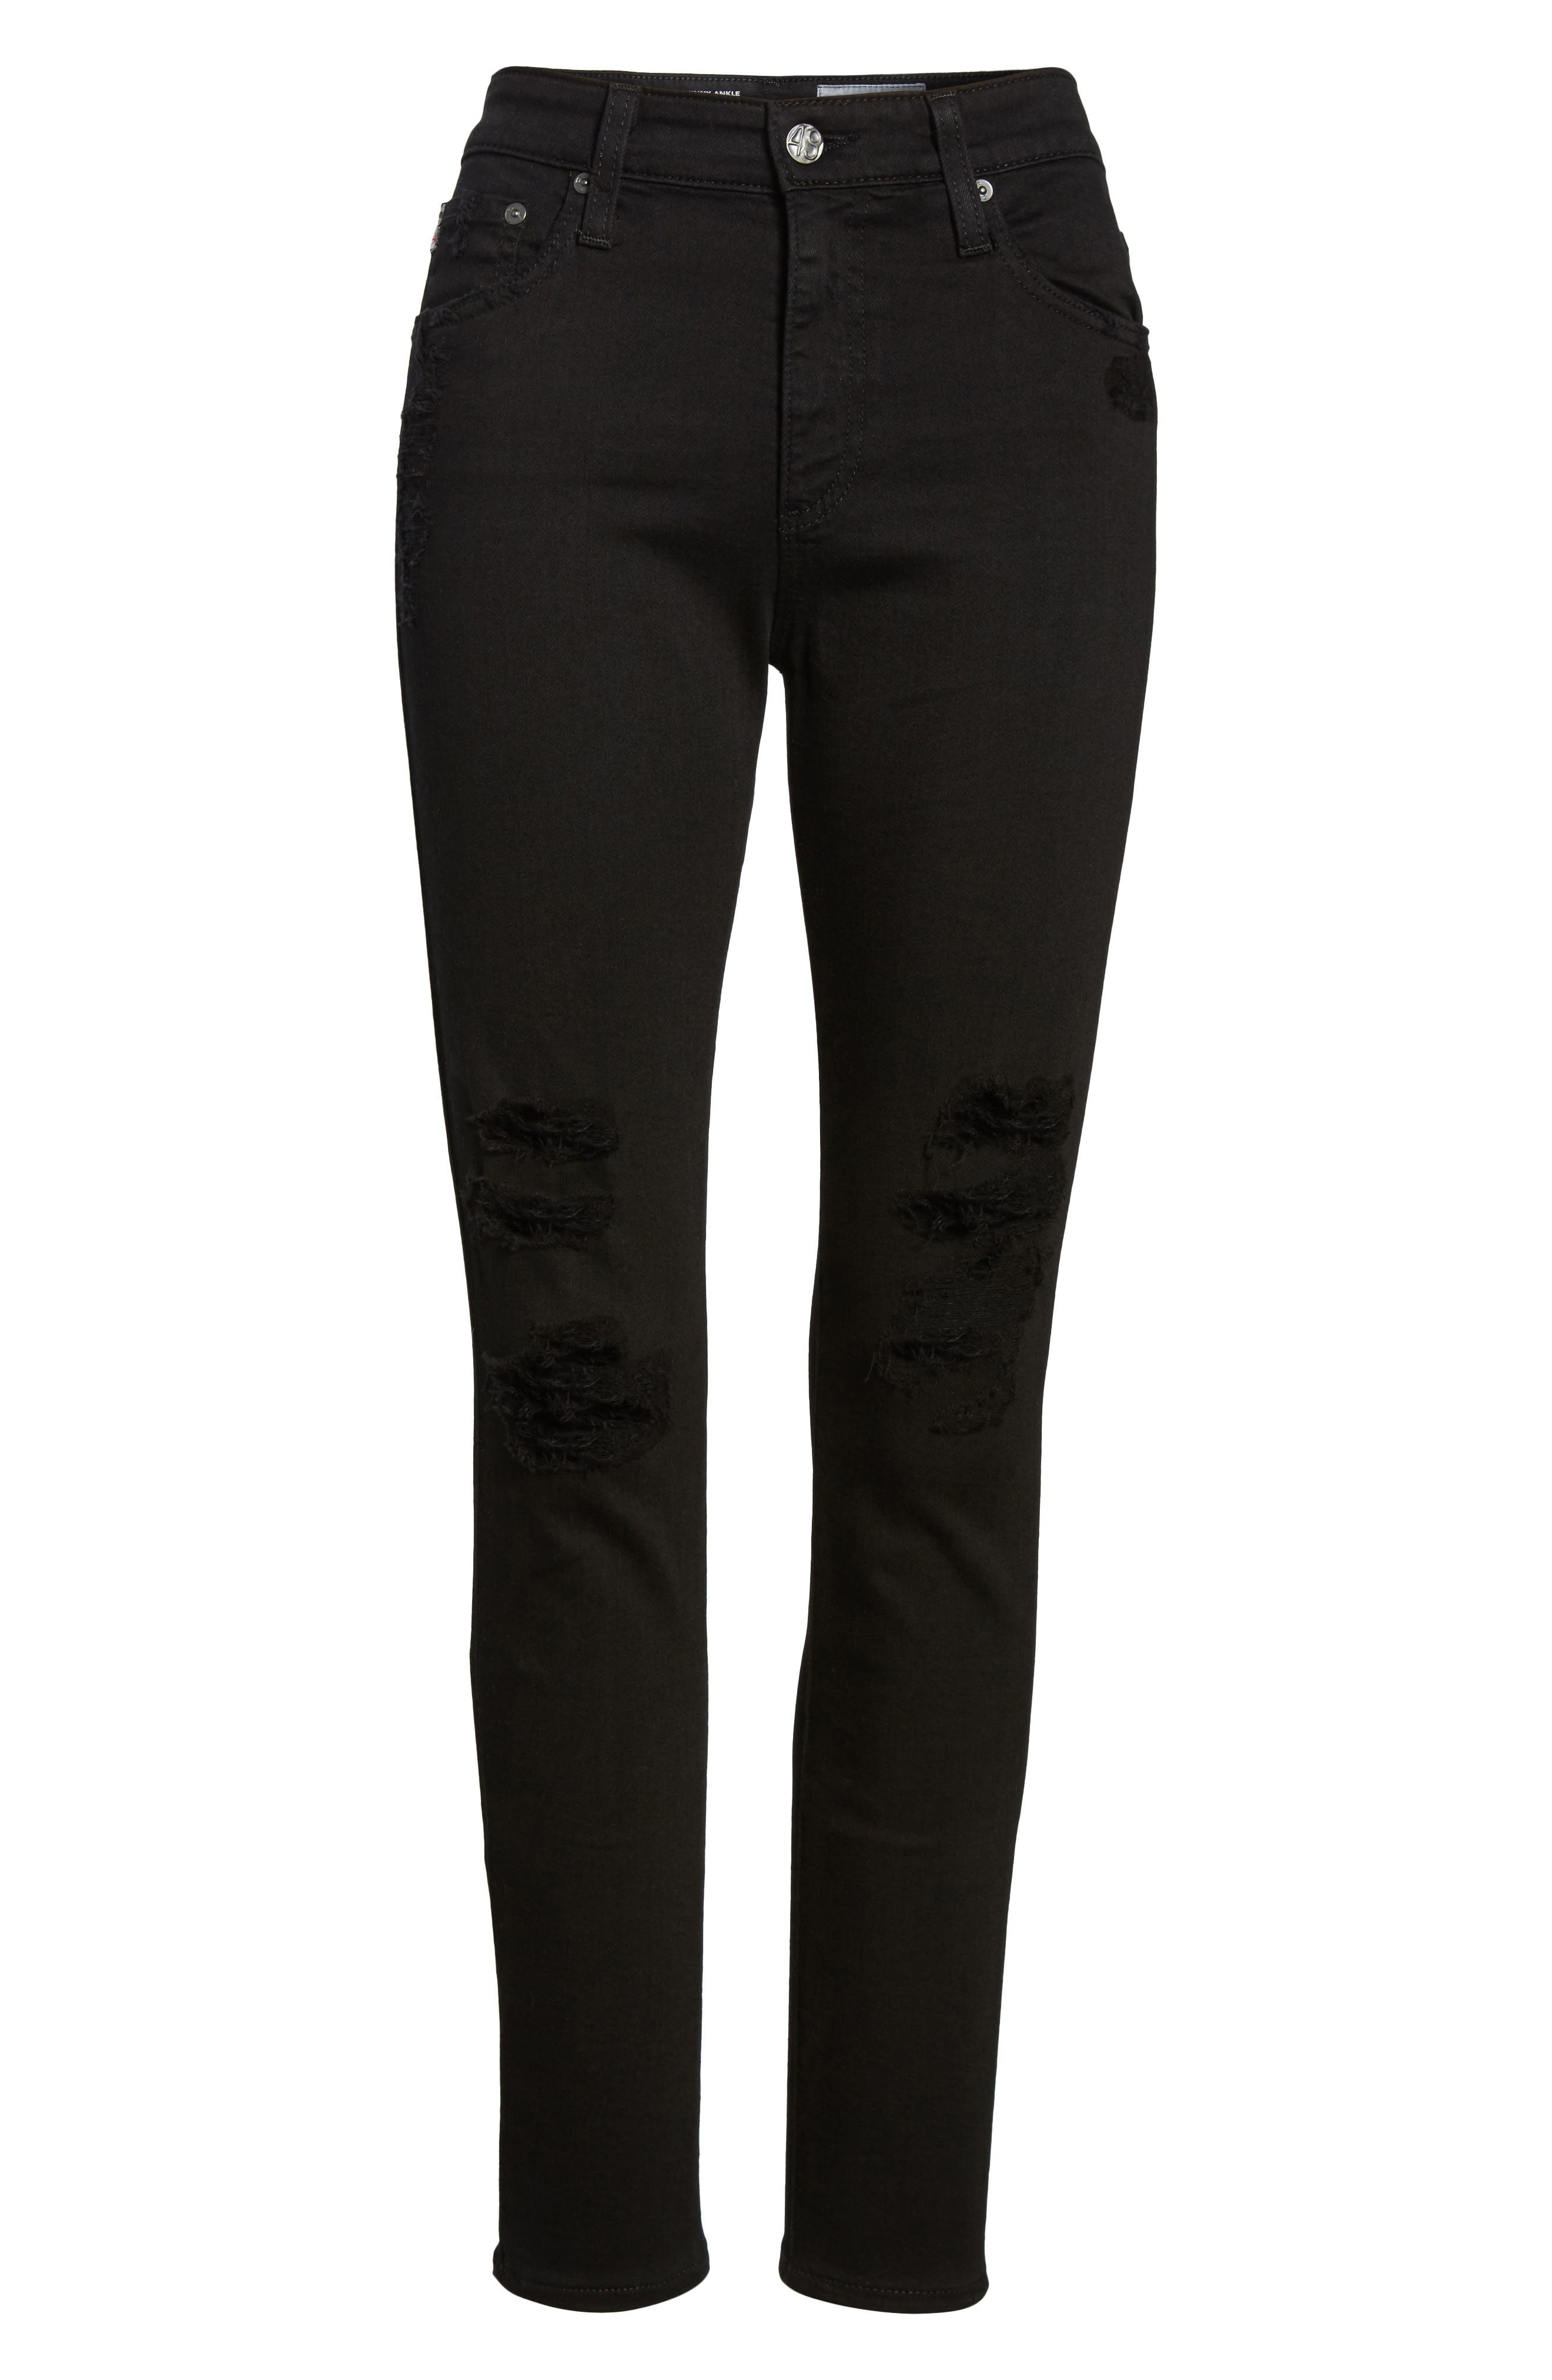 The Farrah High Waist Ankle Skinny Faux Leather Pants,                             Alternate thumbnail 7, color,                             015